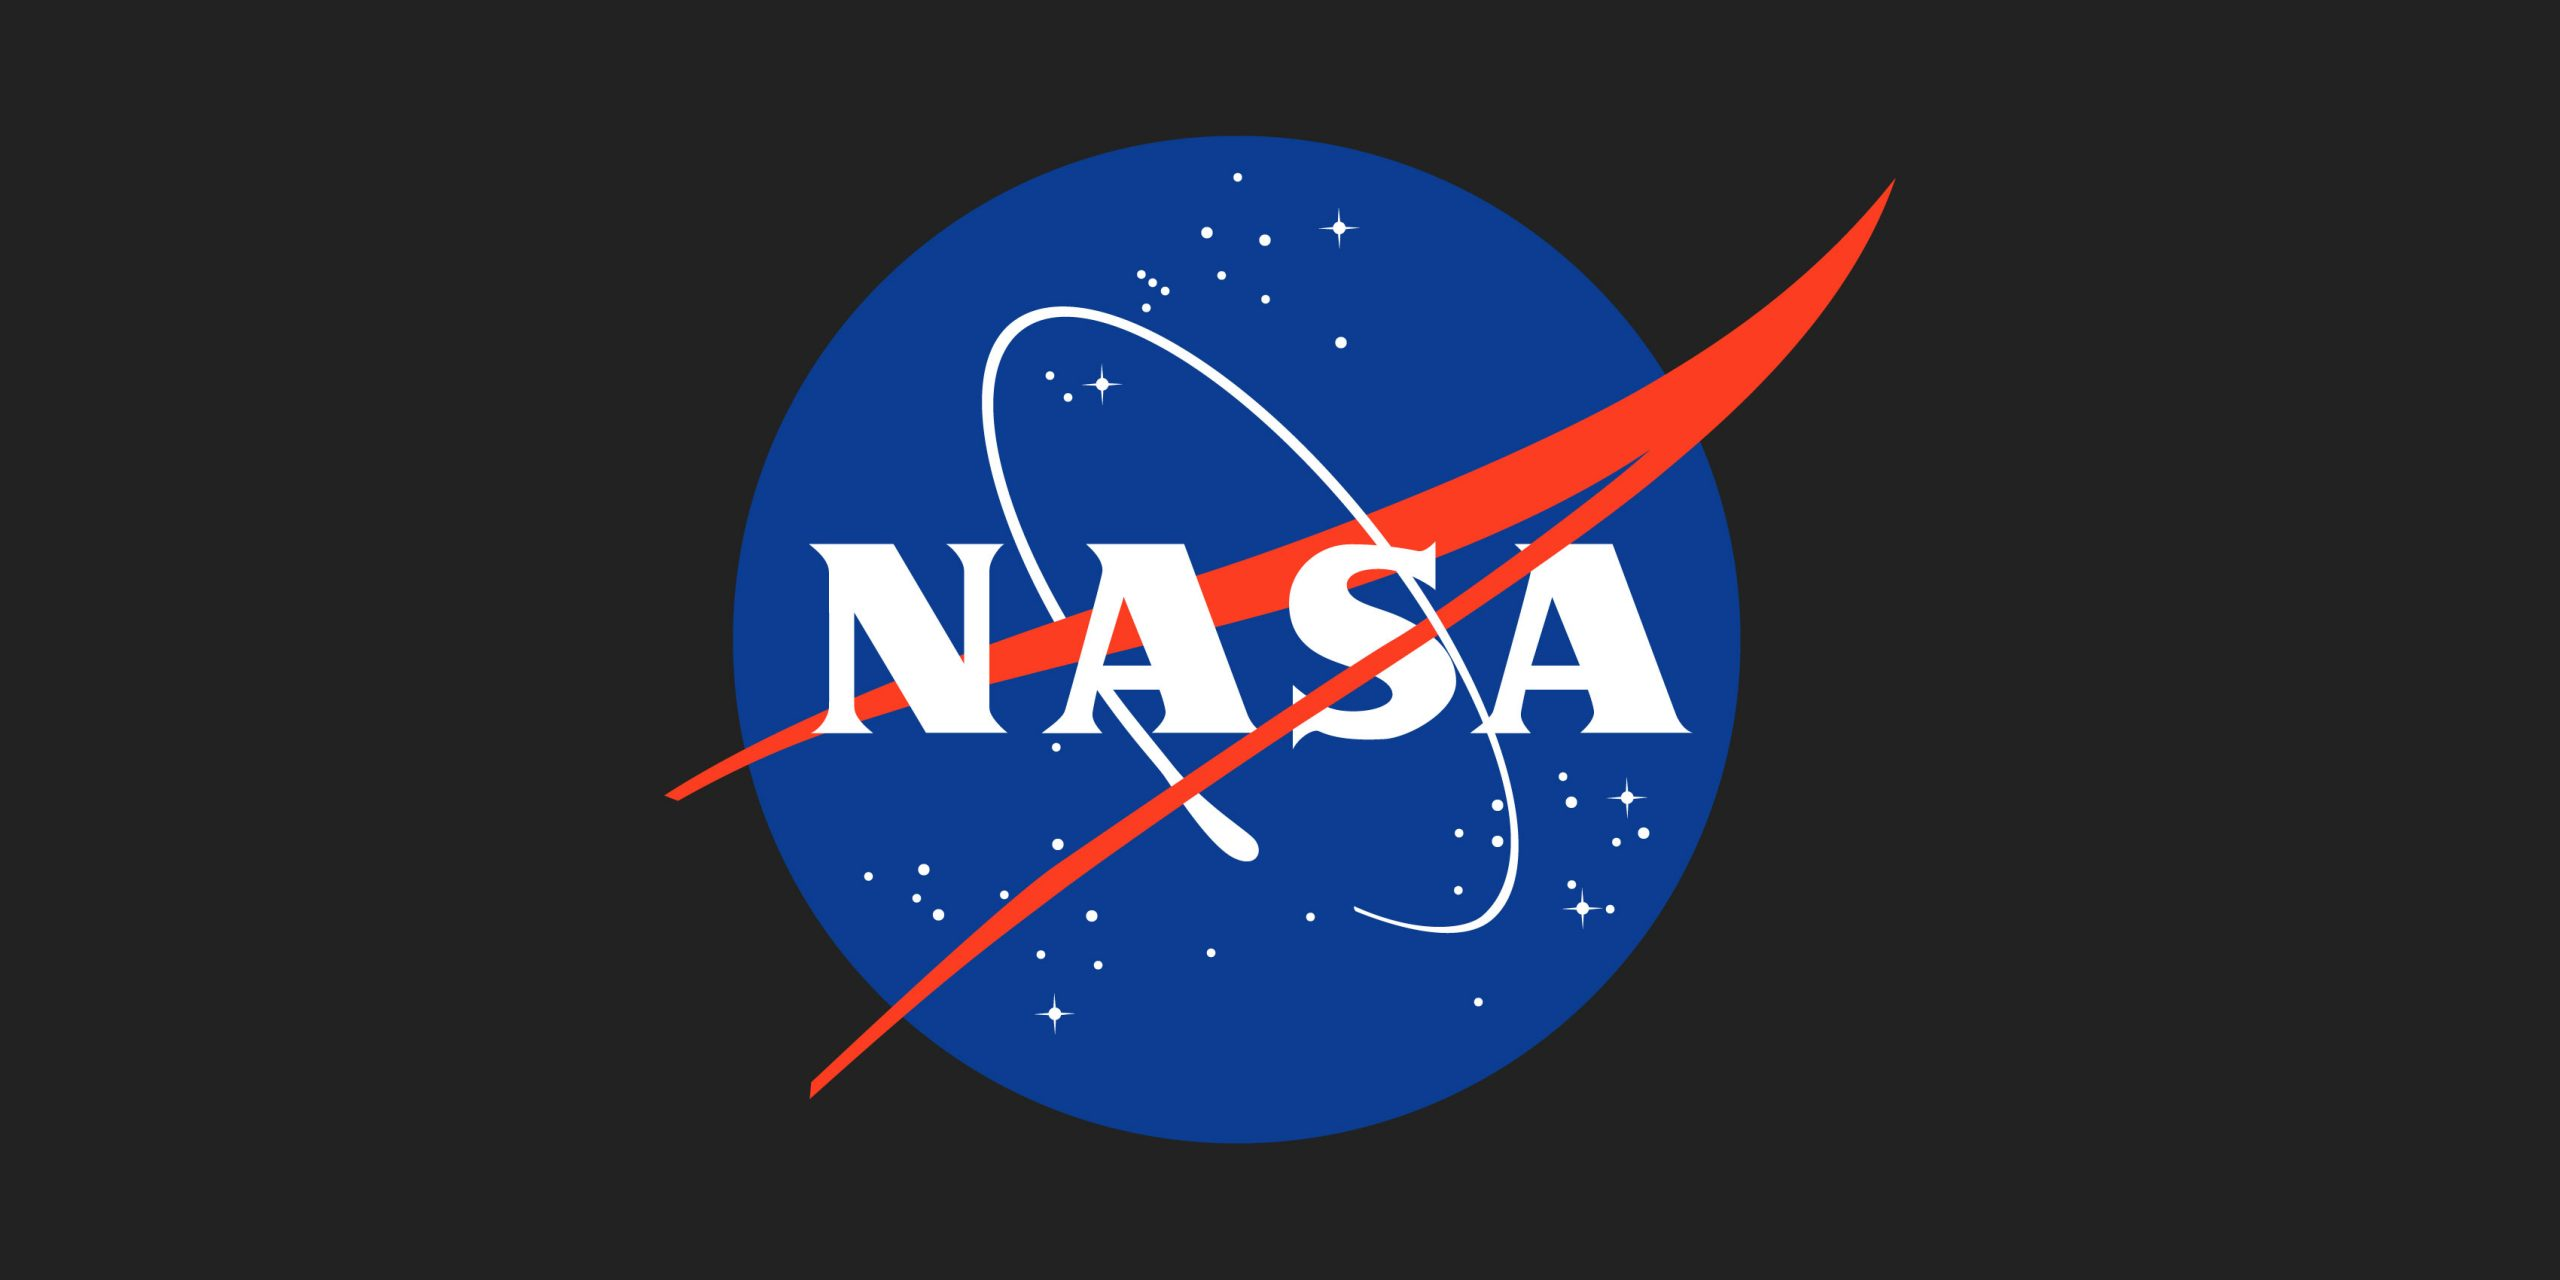 NASA Hosts Virtual Event to Leverage STEM, Small Business Opportunities with Minority Colleges